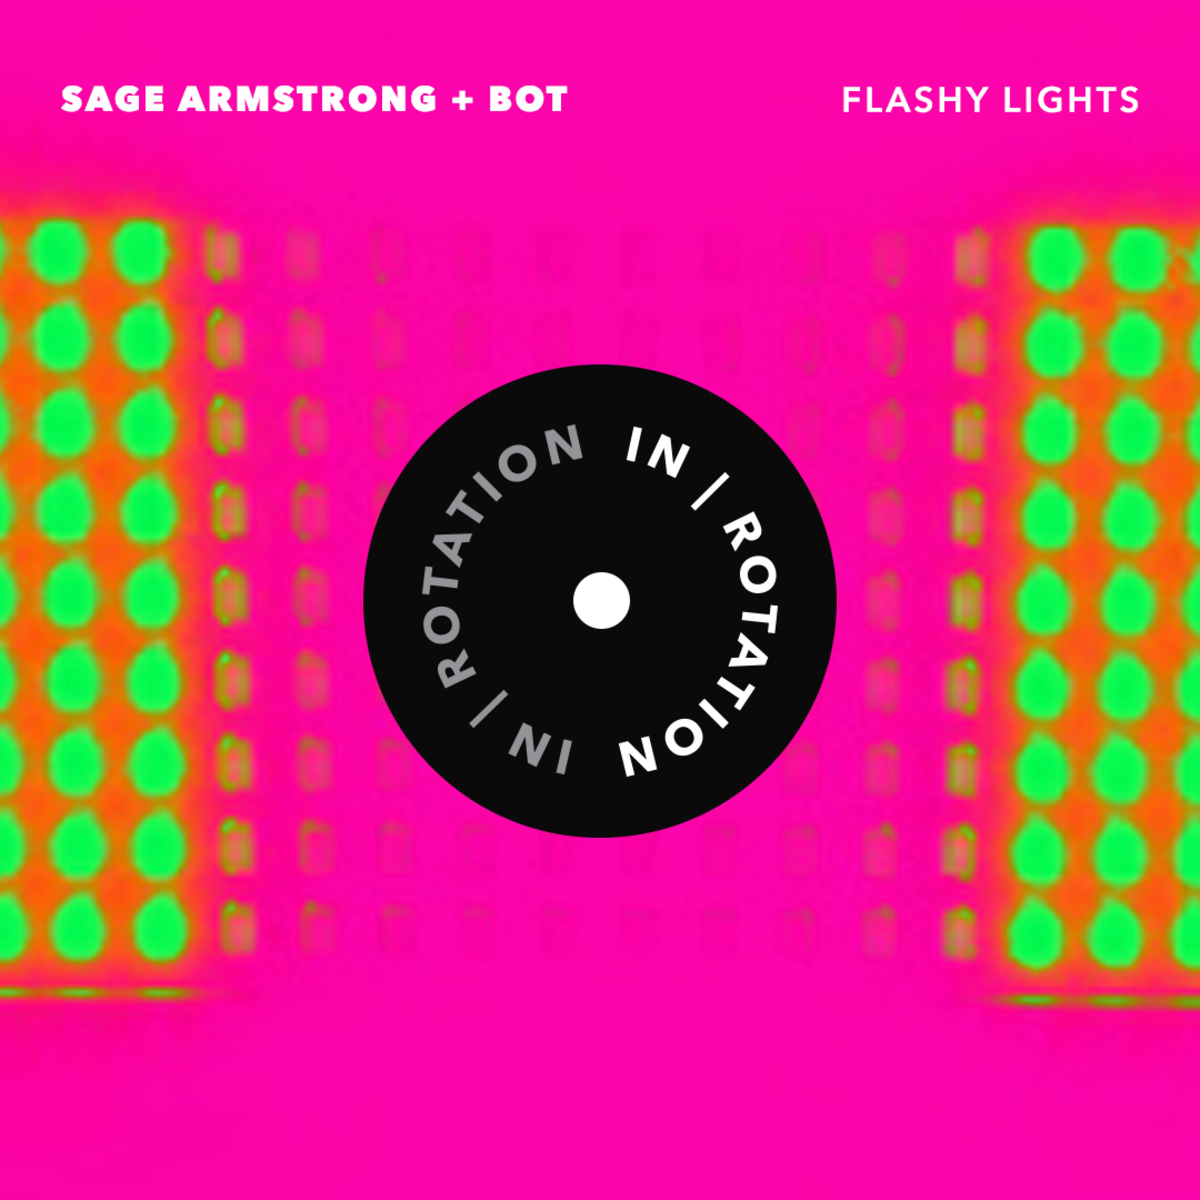 in_rotation_2017_sage_armstrong_bot_flashy_lights_1080x1080_r01